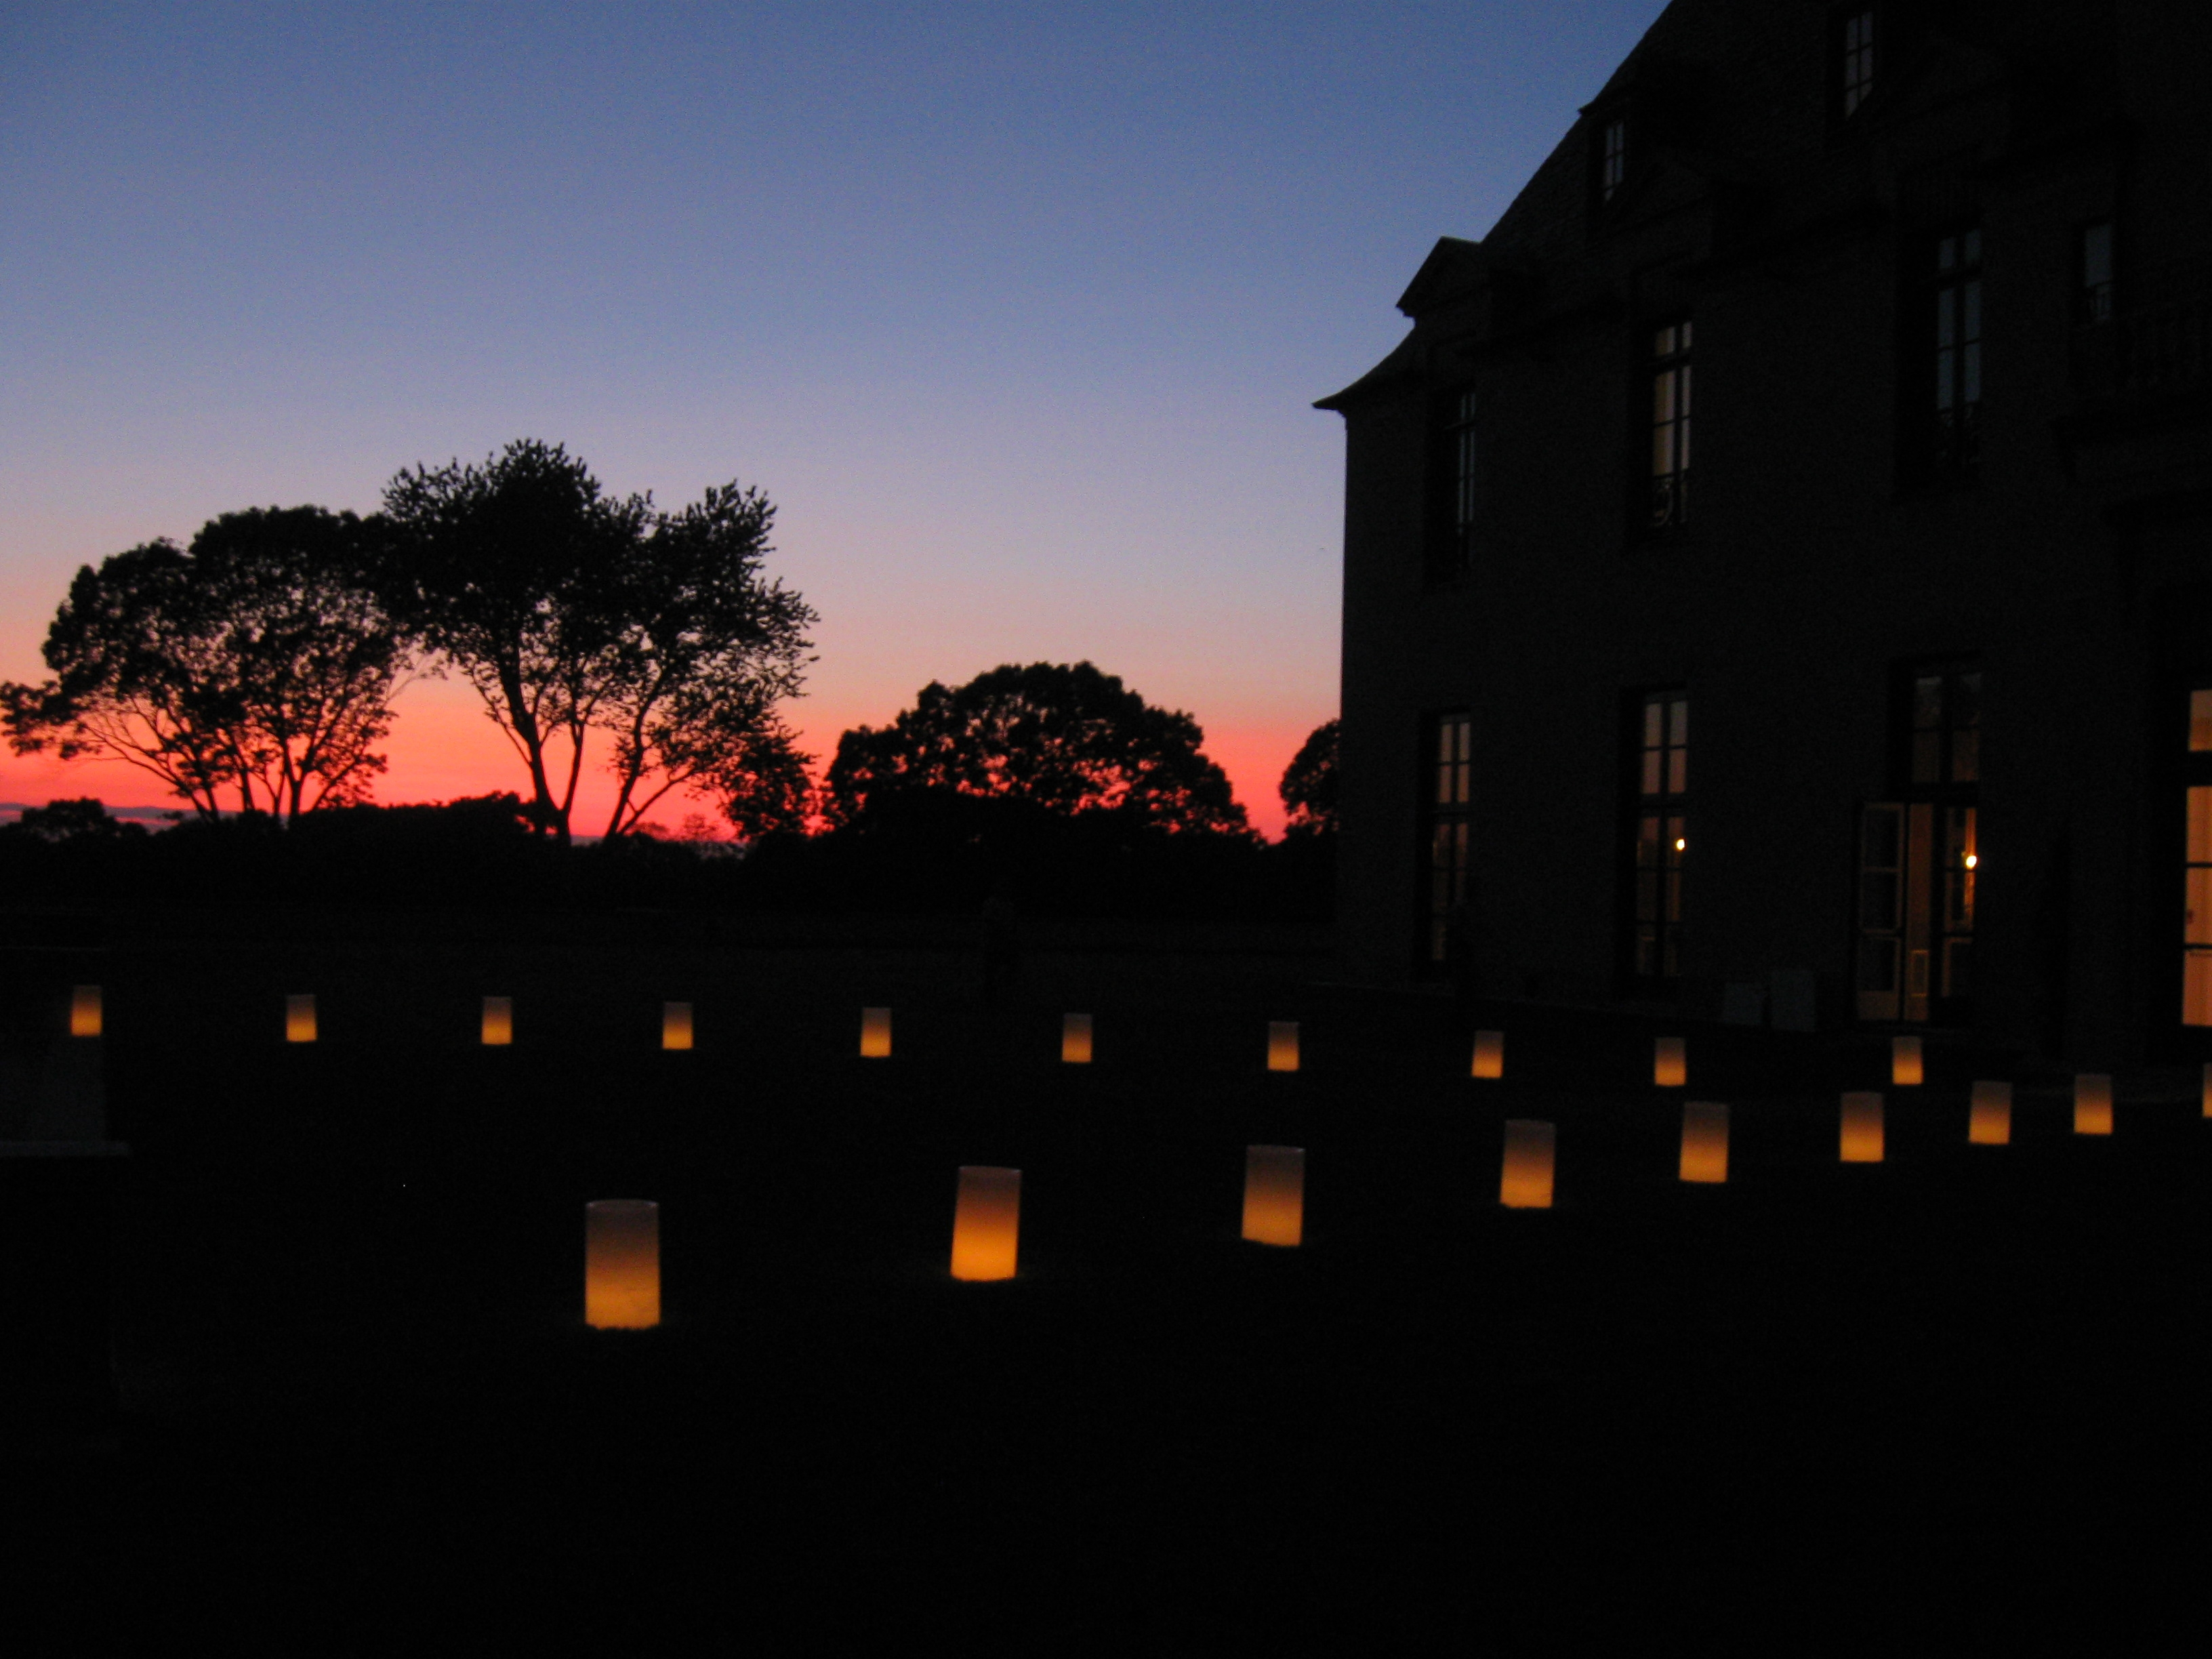 Candles at sunset